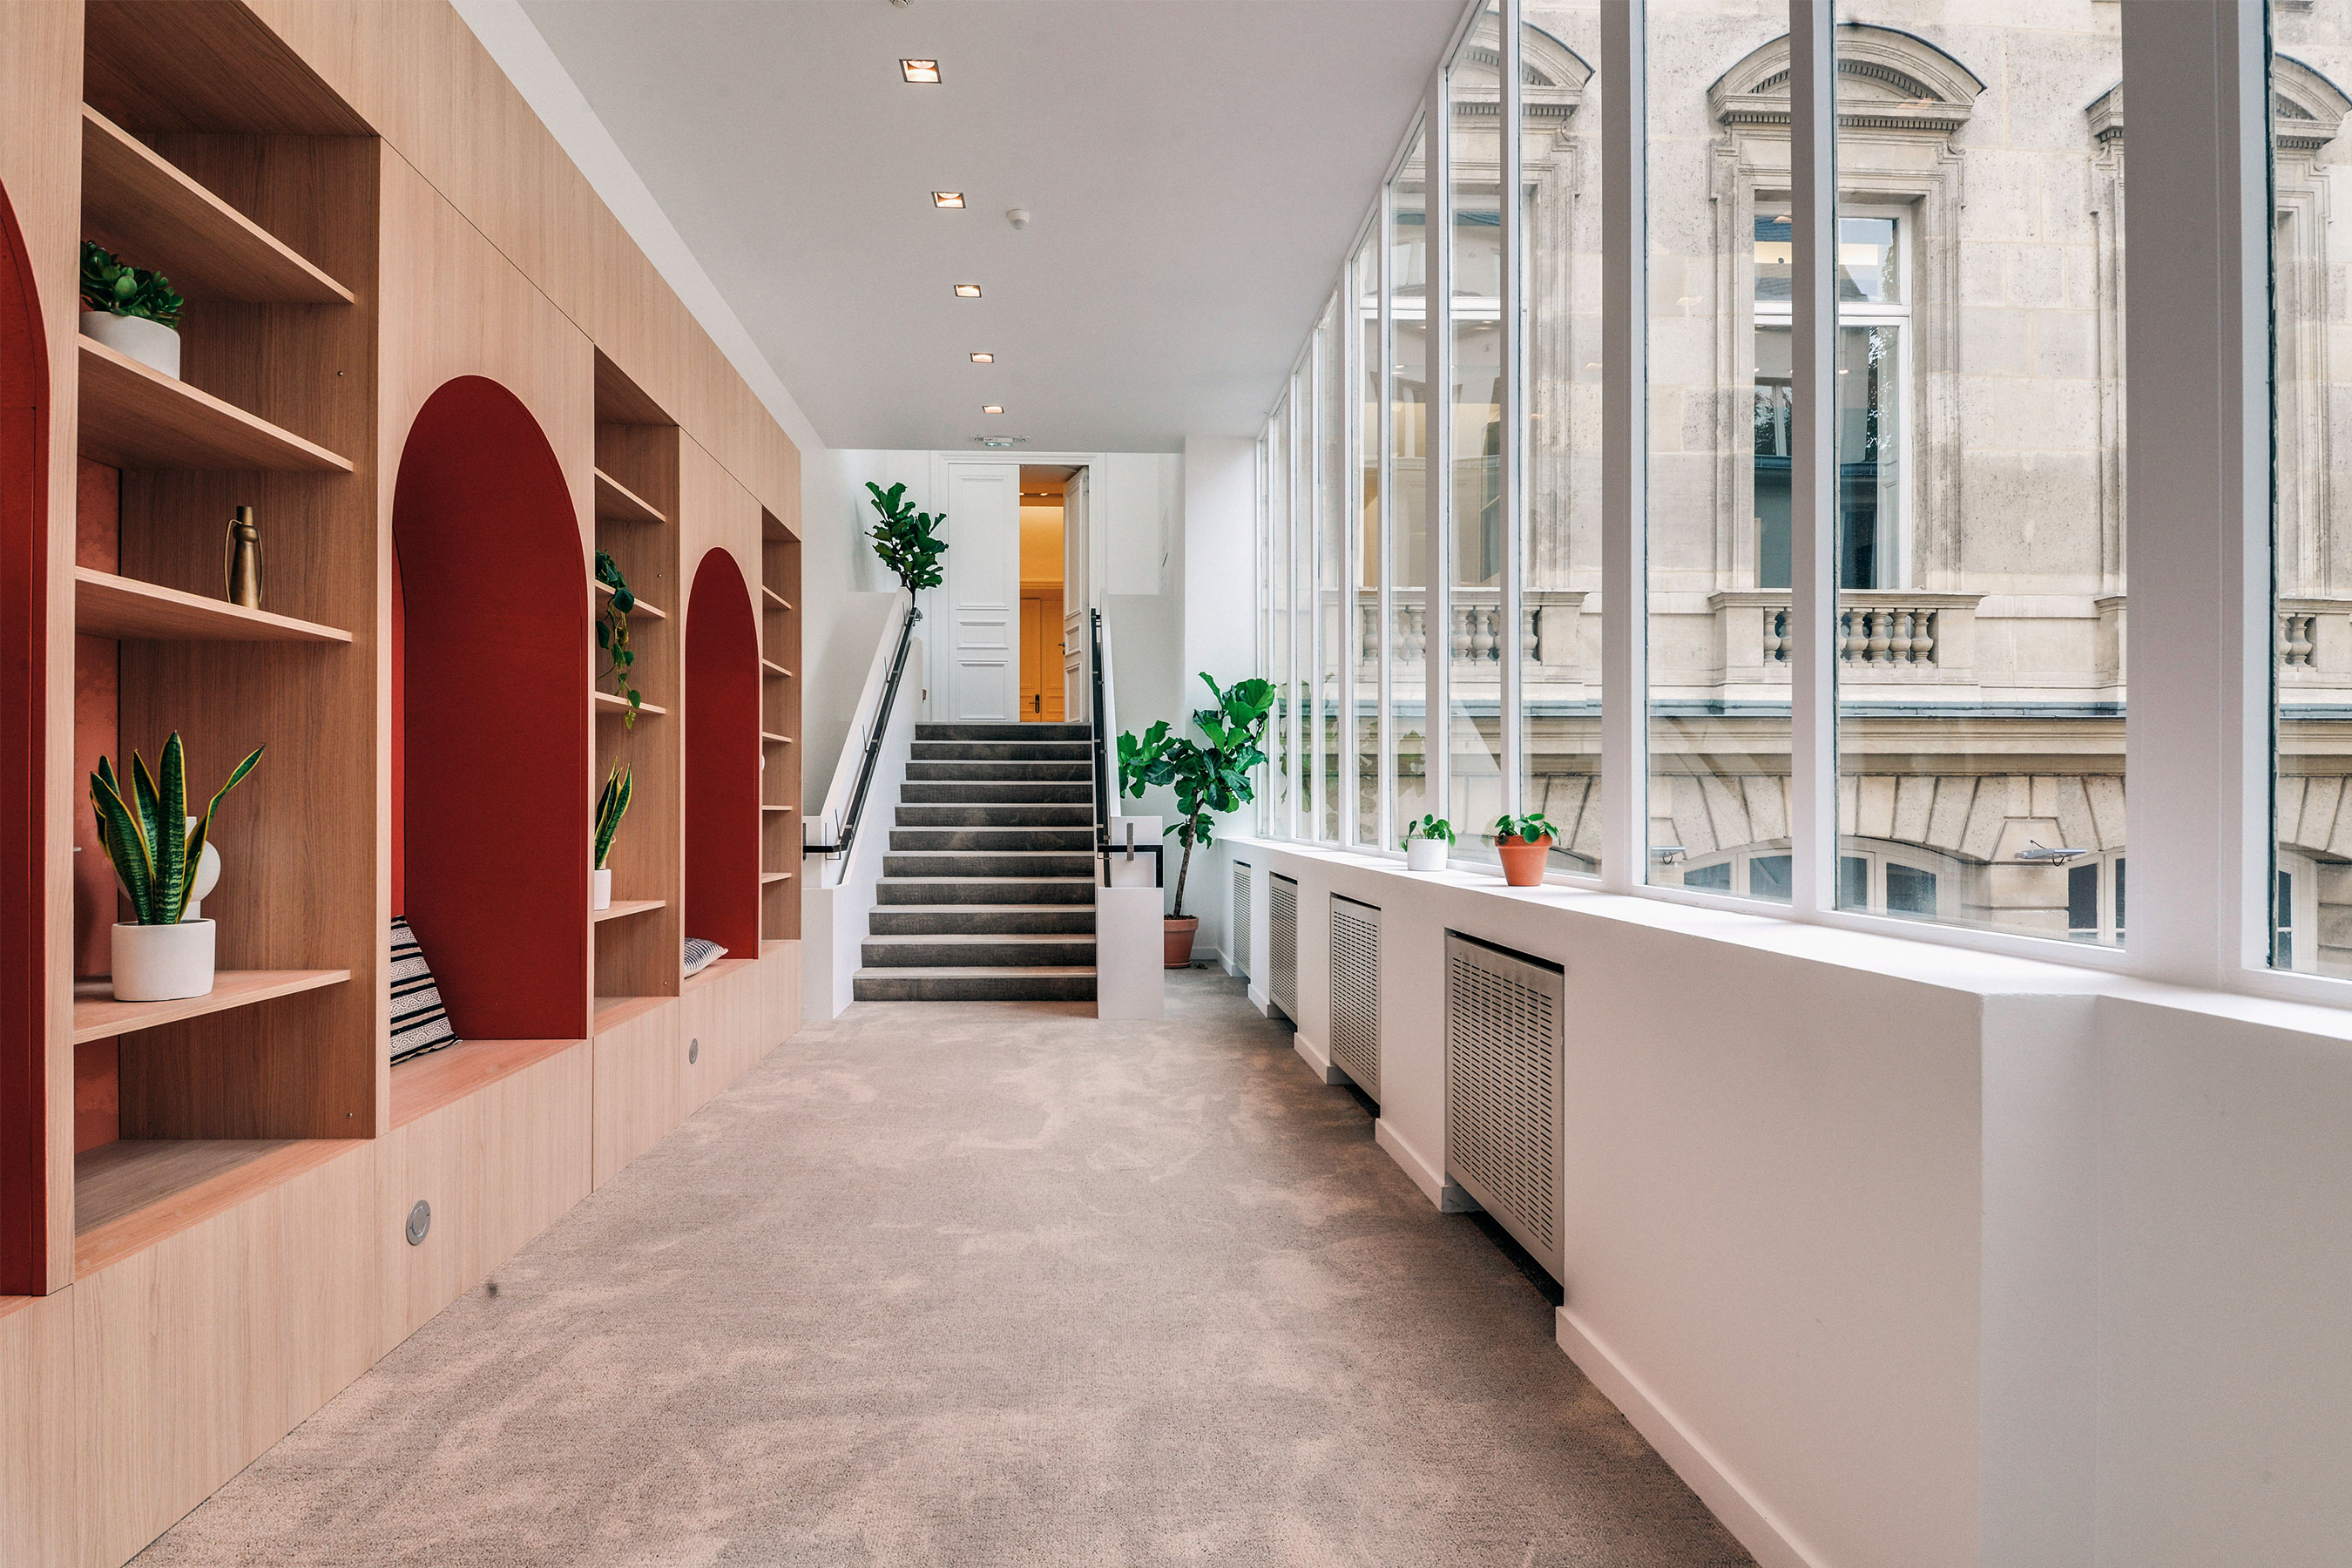 coworking Champs-Elysees - Couloir